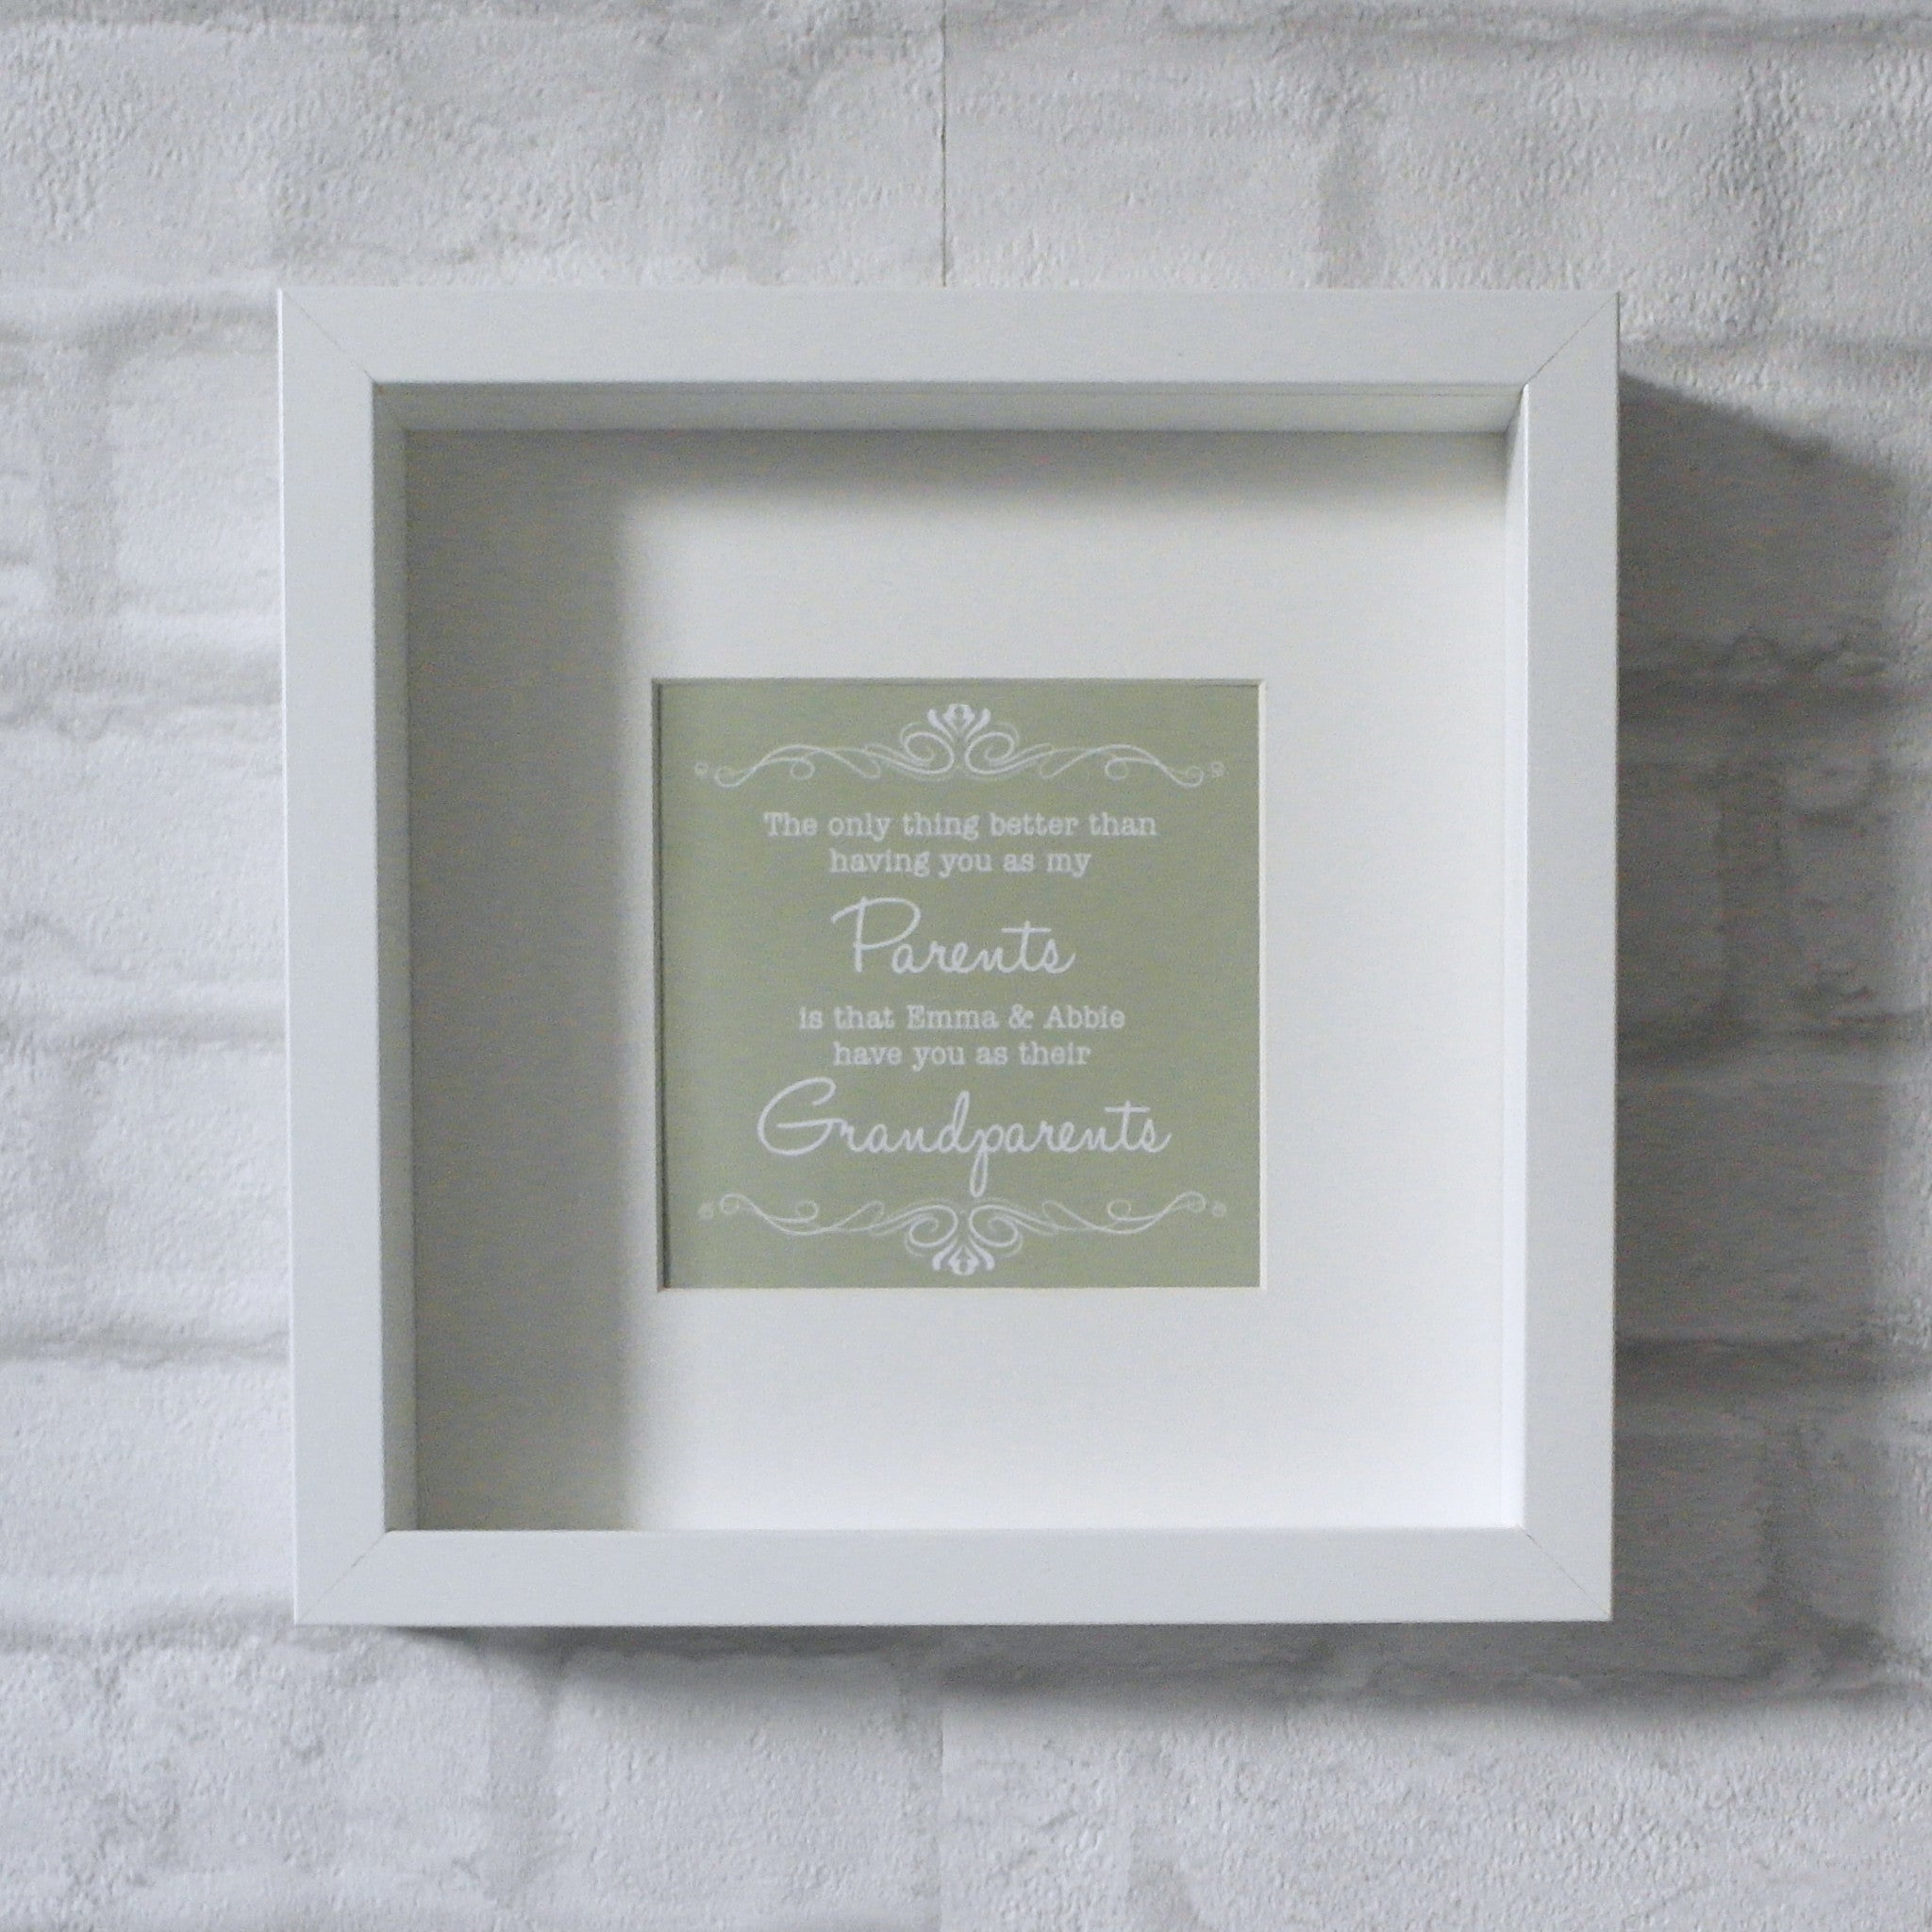 The Only Thing Better Than... Frame | All Things Interior